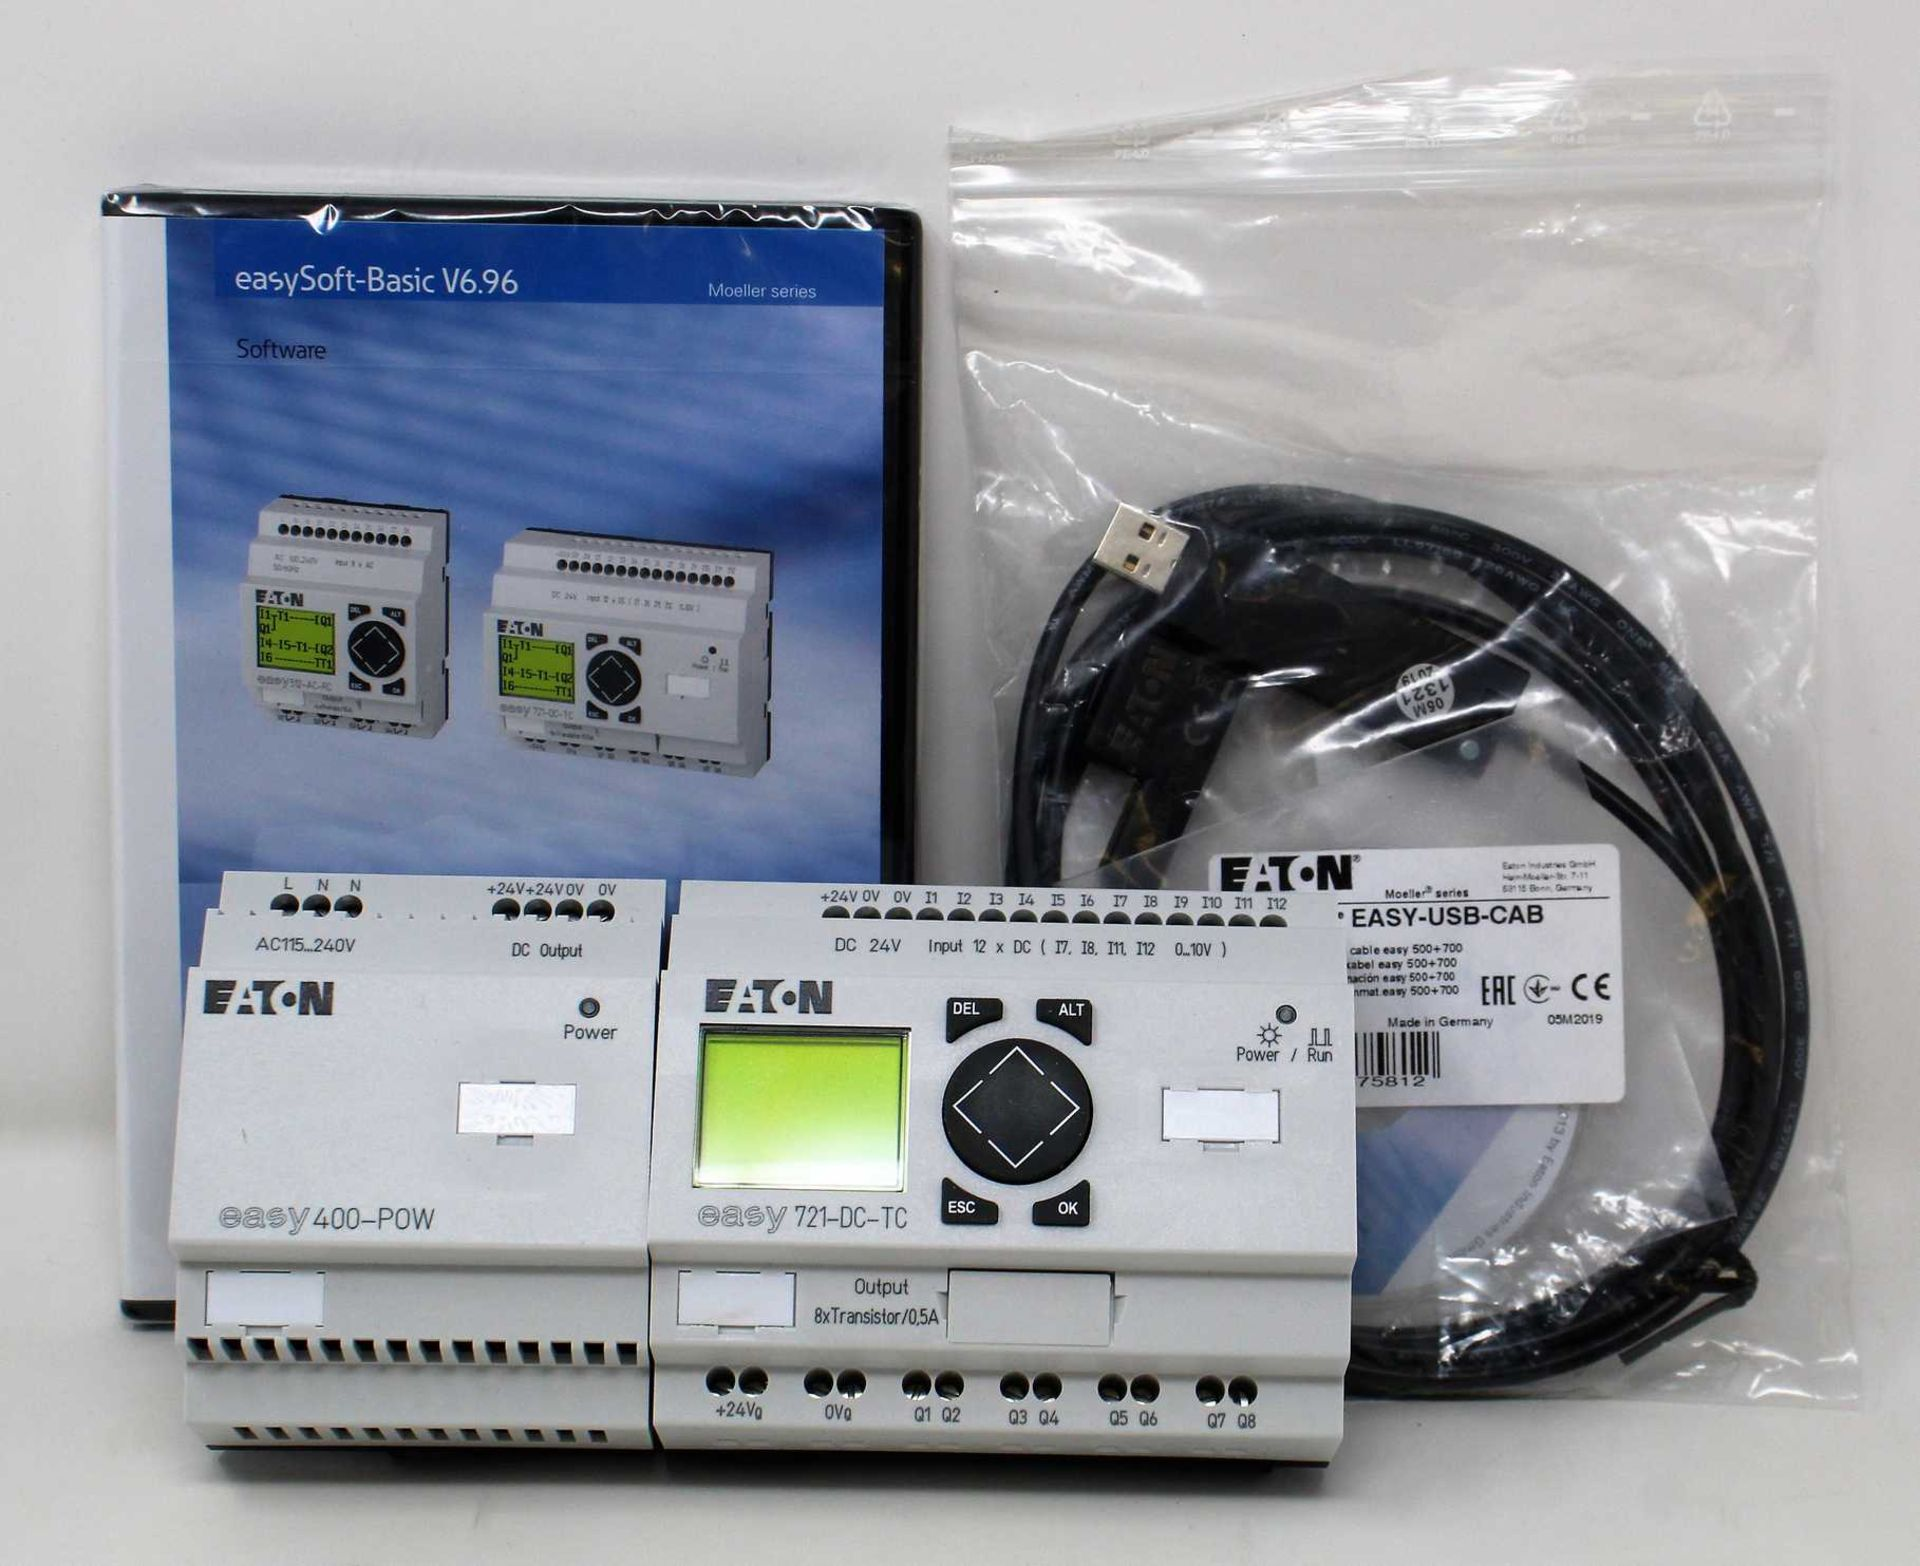 A boxed as new Eaton easy Logic Module Starter Kit (EASY-BOX-721-DC-USB) (Exterior box damaged).